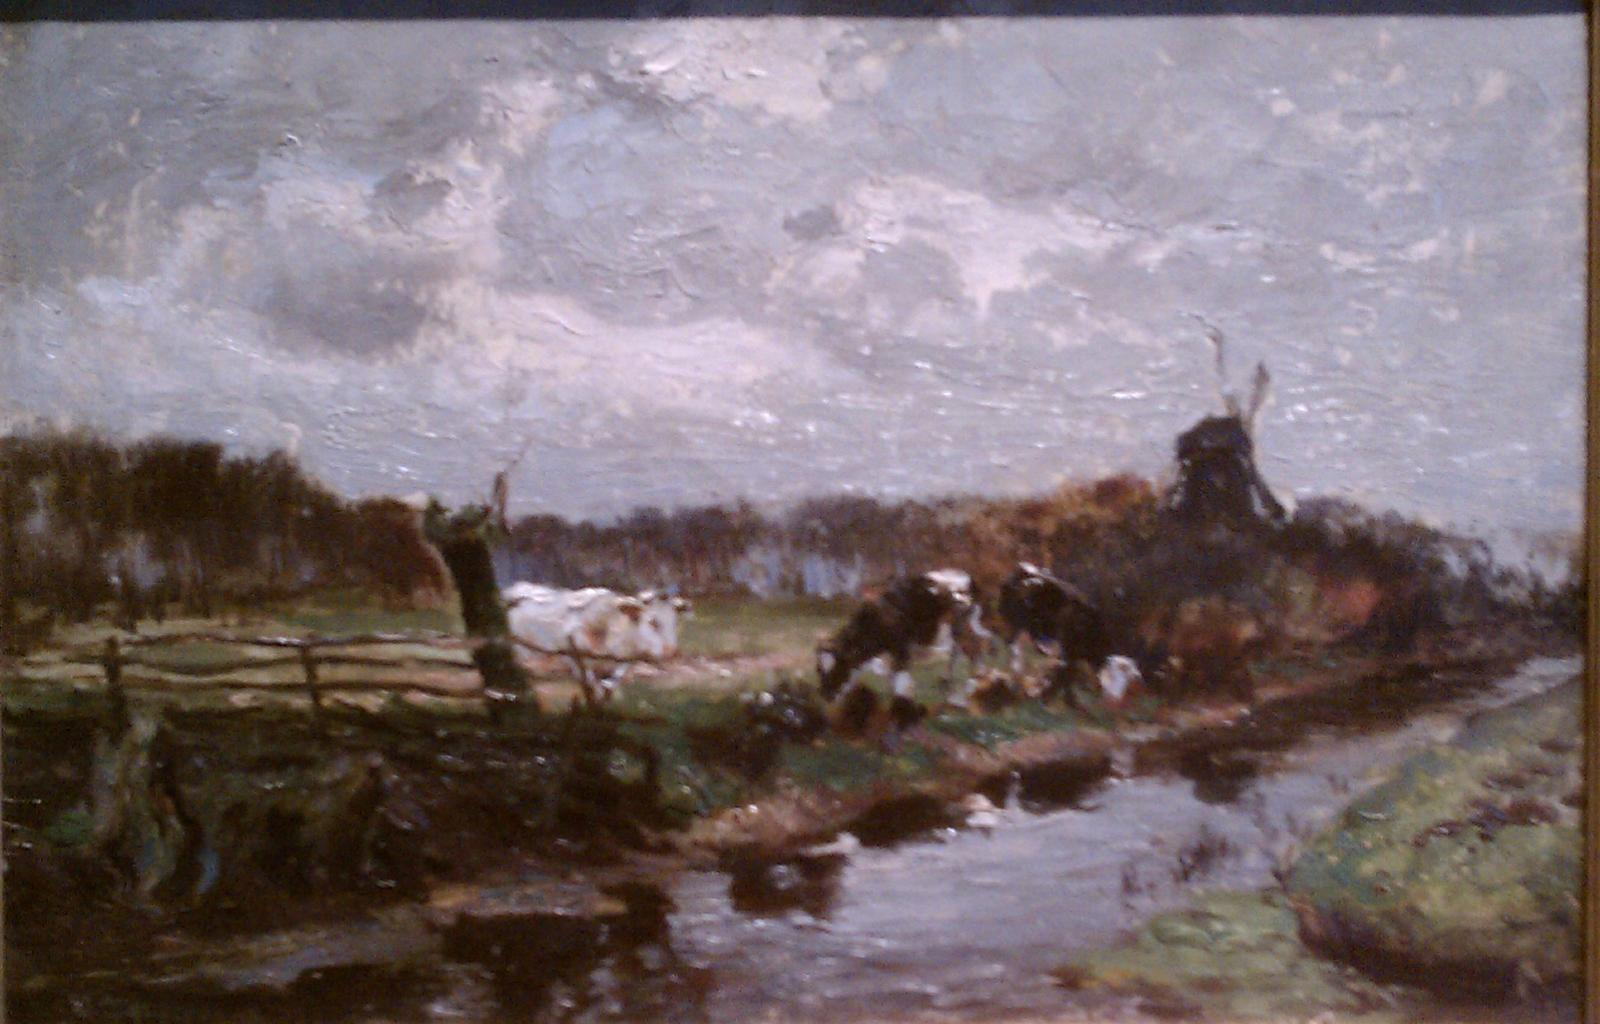 Cows along a stream with a partial fence.